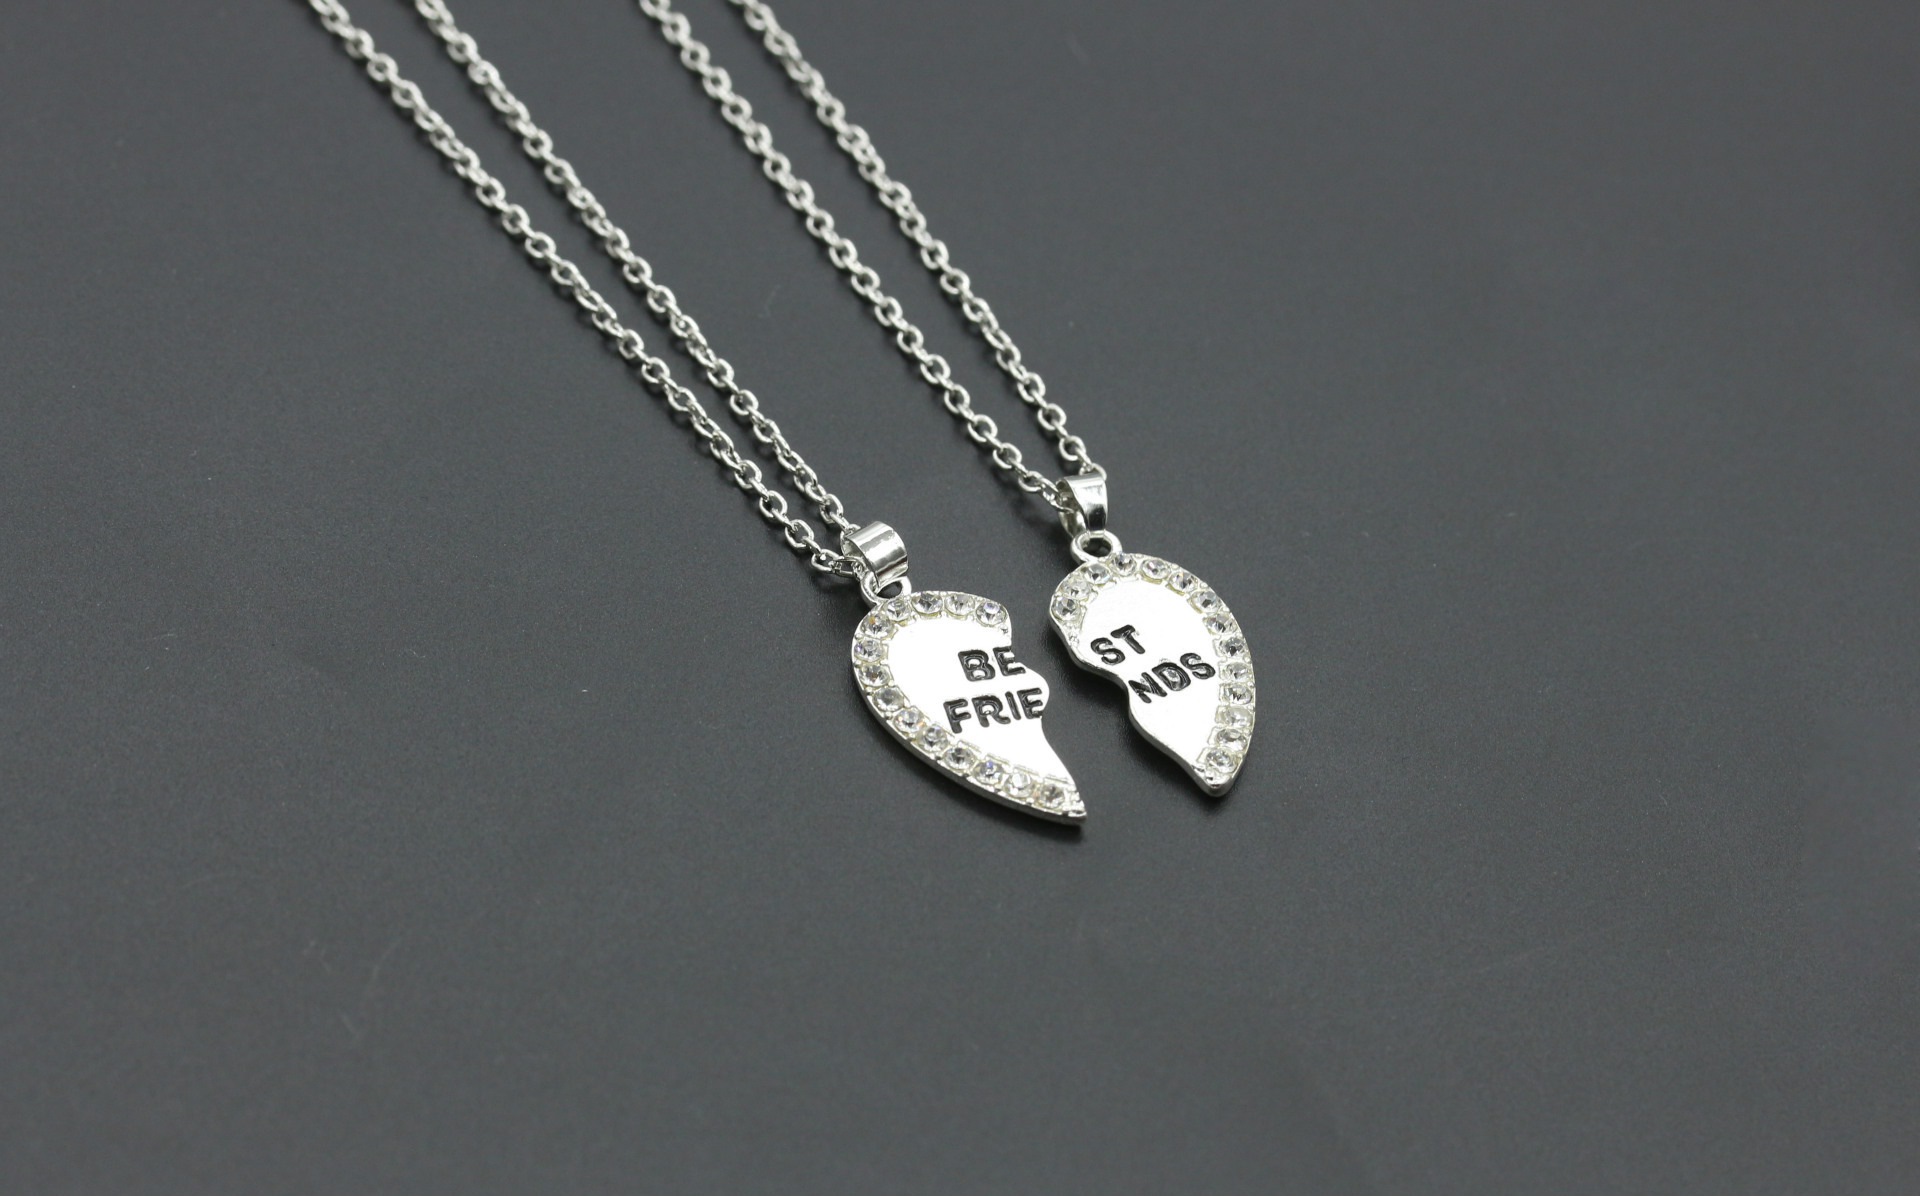 2pcs-Best-Friends-Heart-Necklace-Pendant-Crystal-Rhinstone-Silver-Chain-Gifts